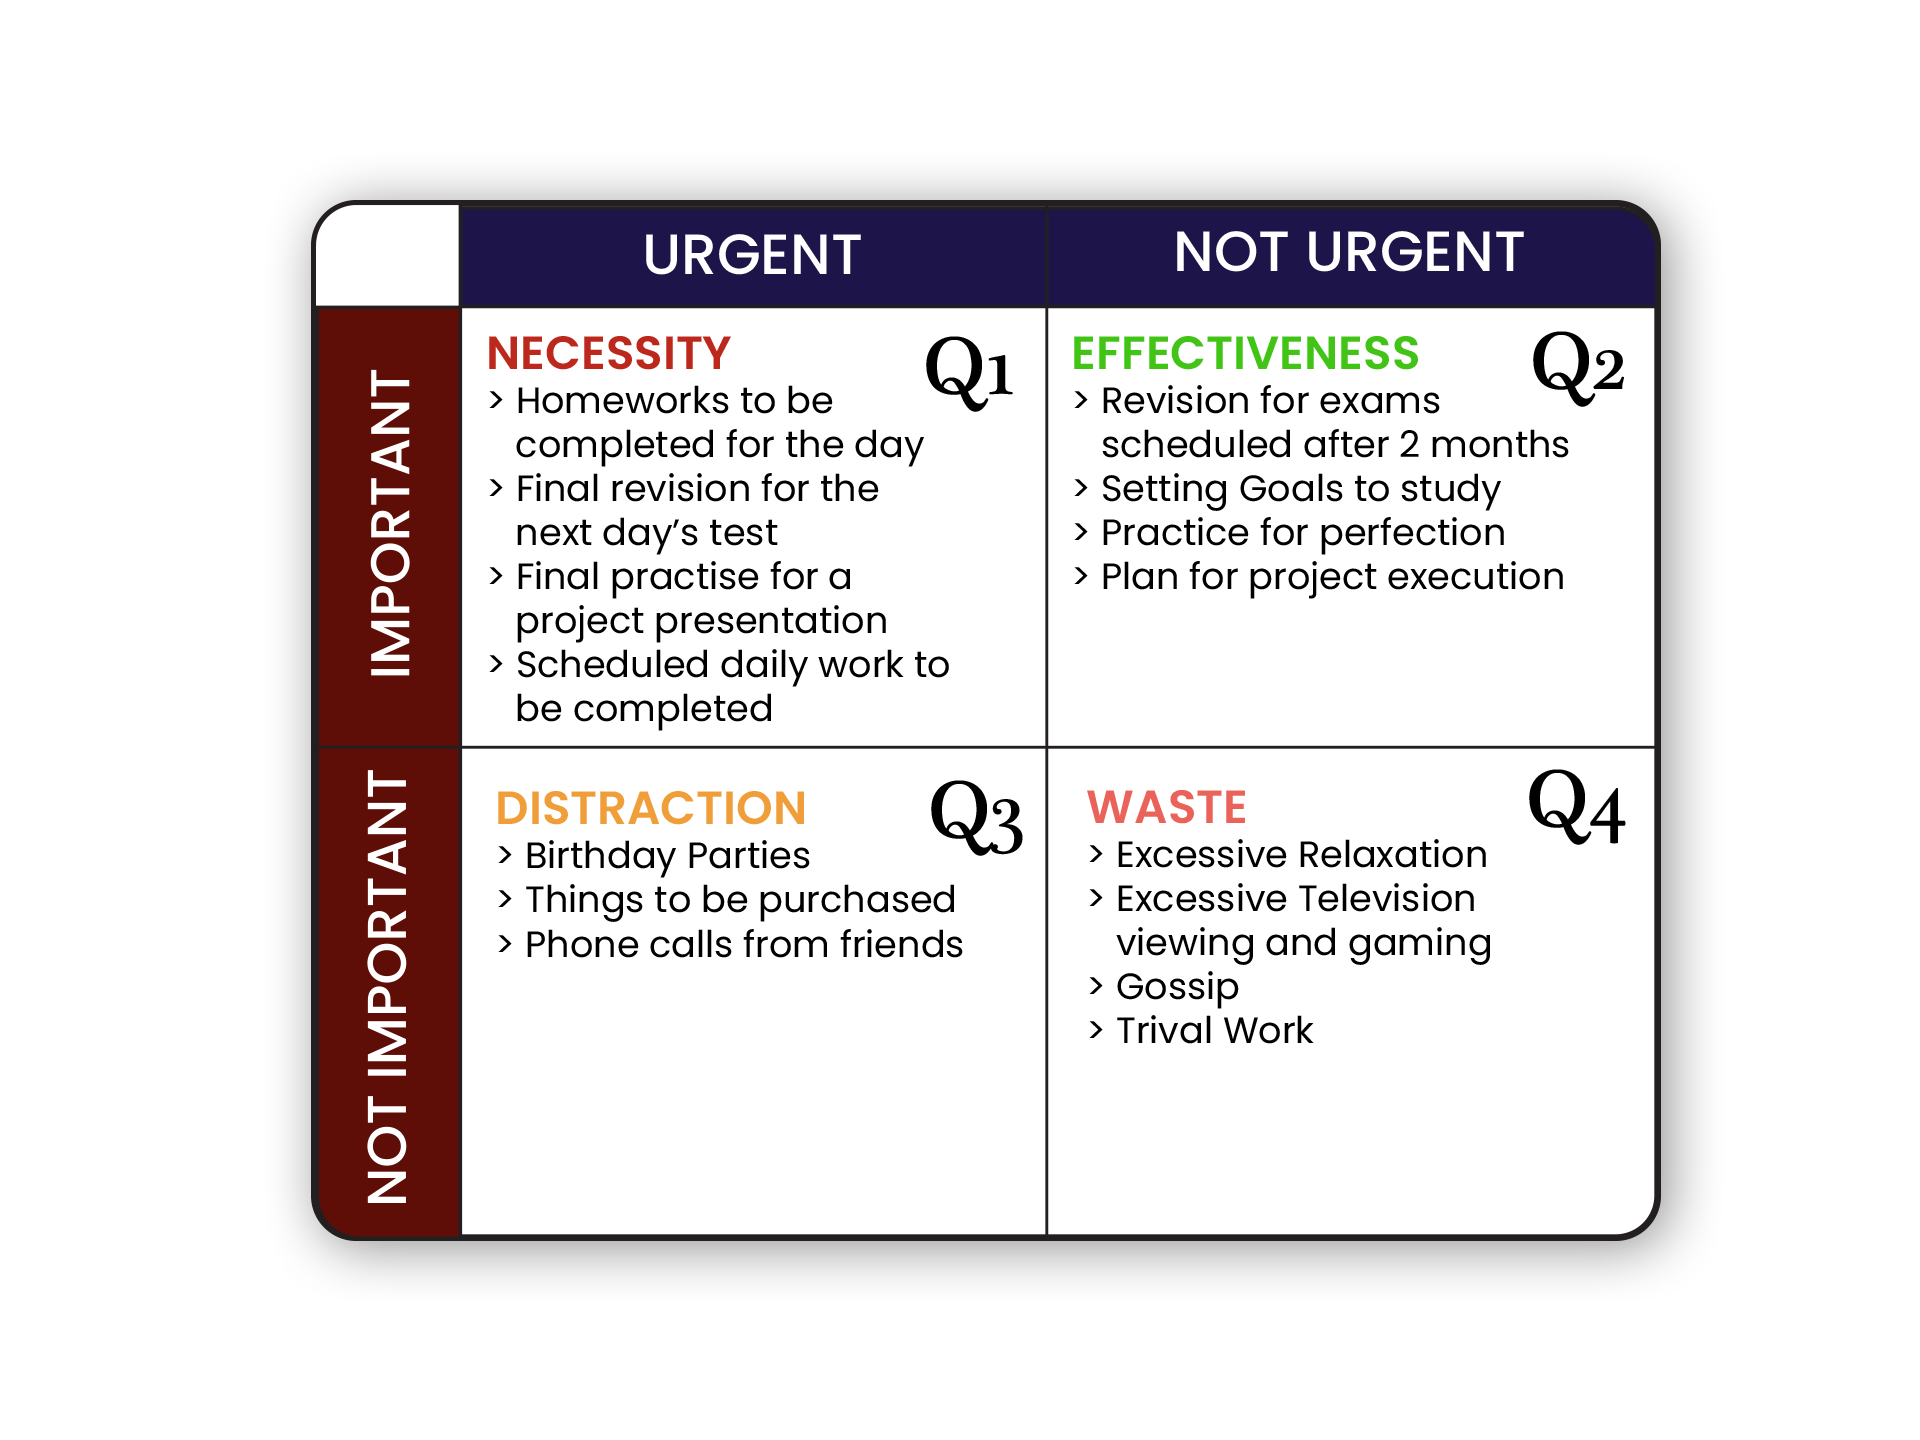 eisenhower decision matrix: priortize tasks as to reduce prioritization